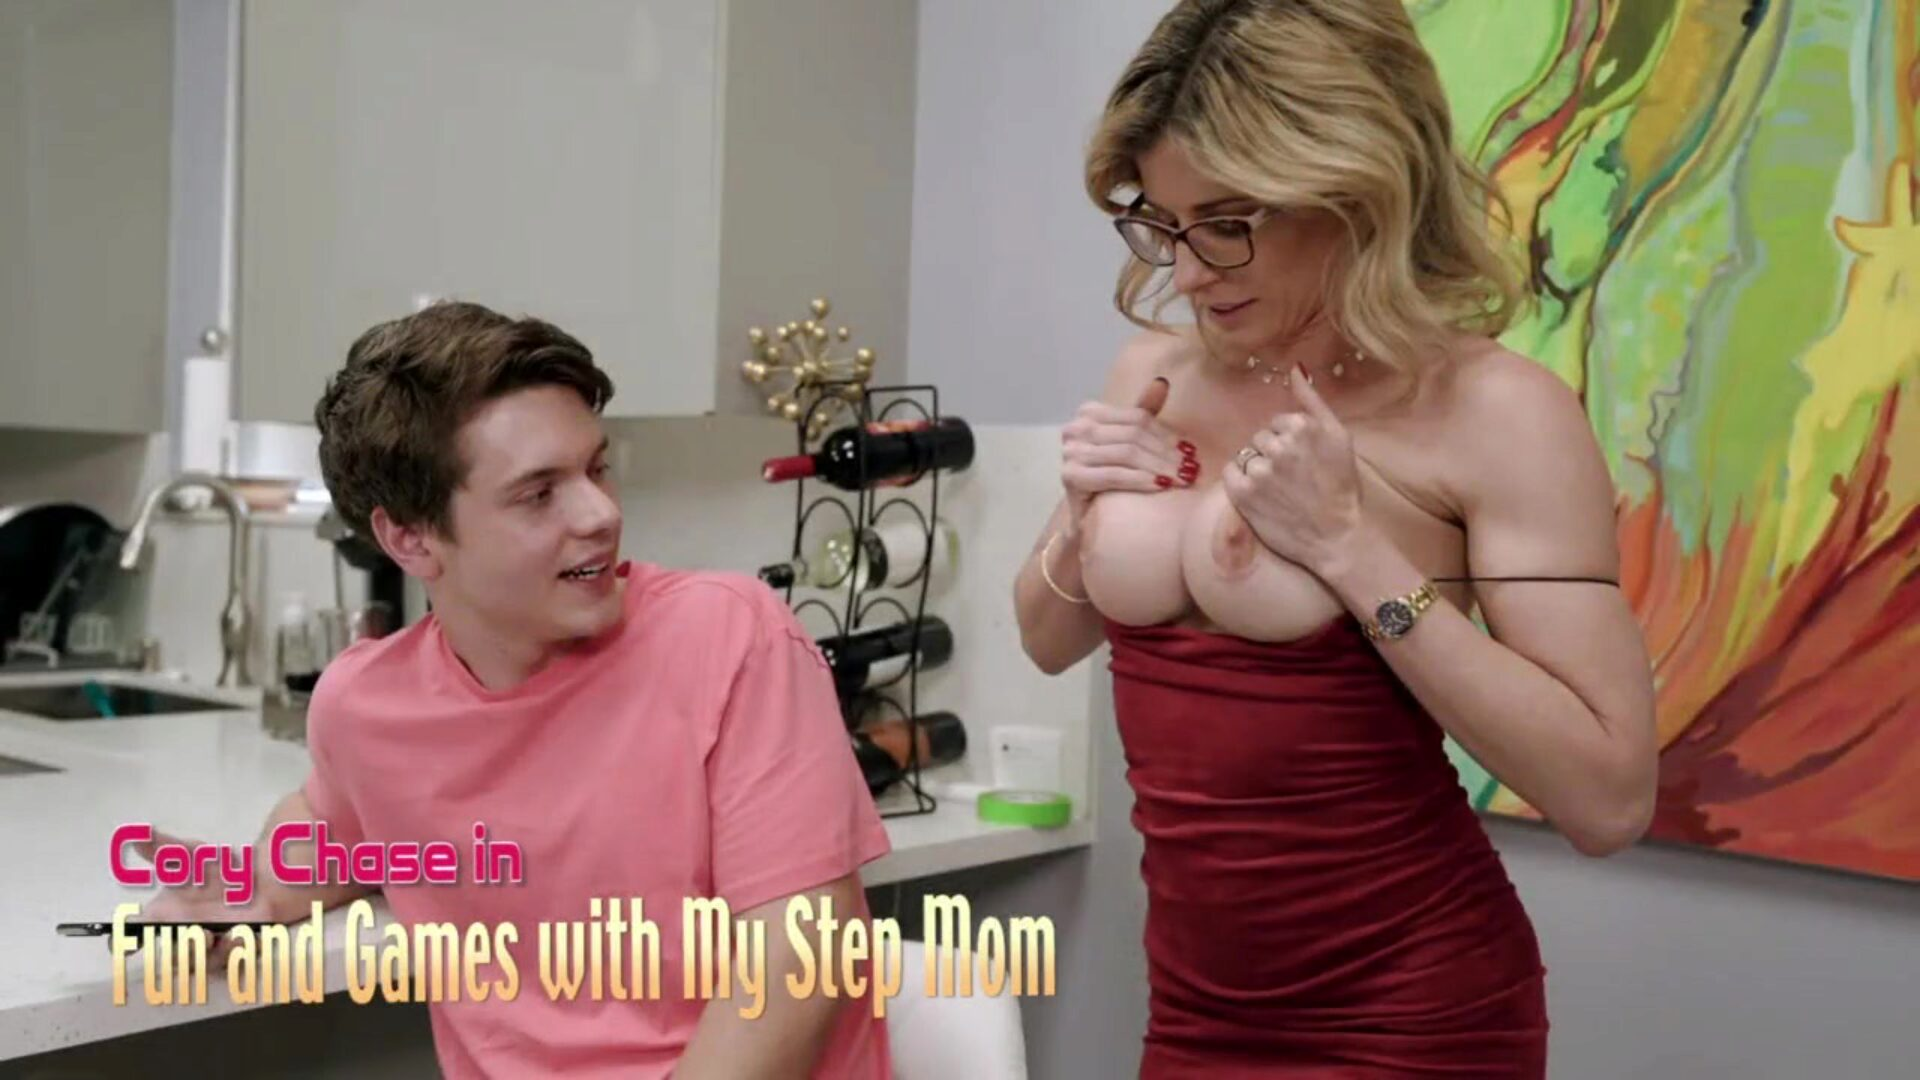 thestepmomporn.com - Young Boy Fuck His Sexy Stepmom thestepmomporn.com - Young Boy Fuck His Sexy Stepmom